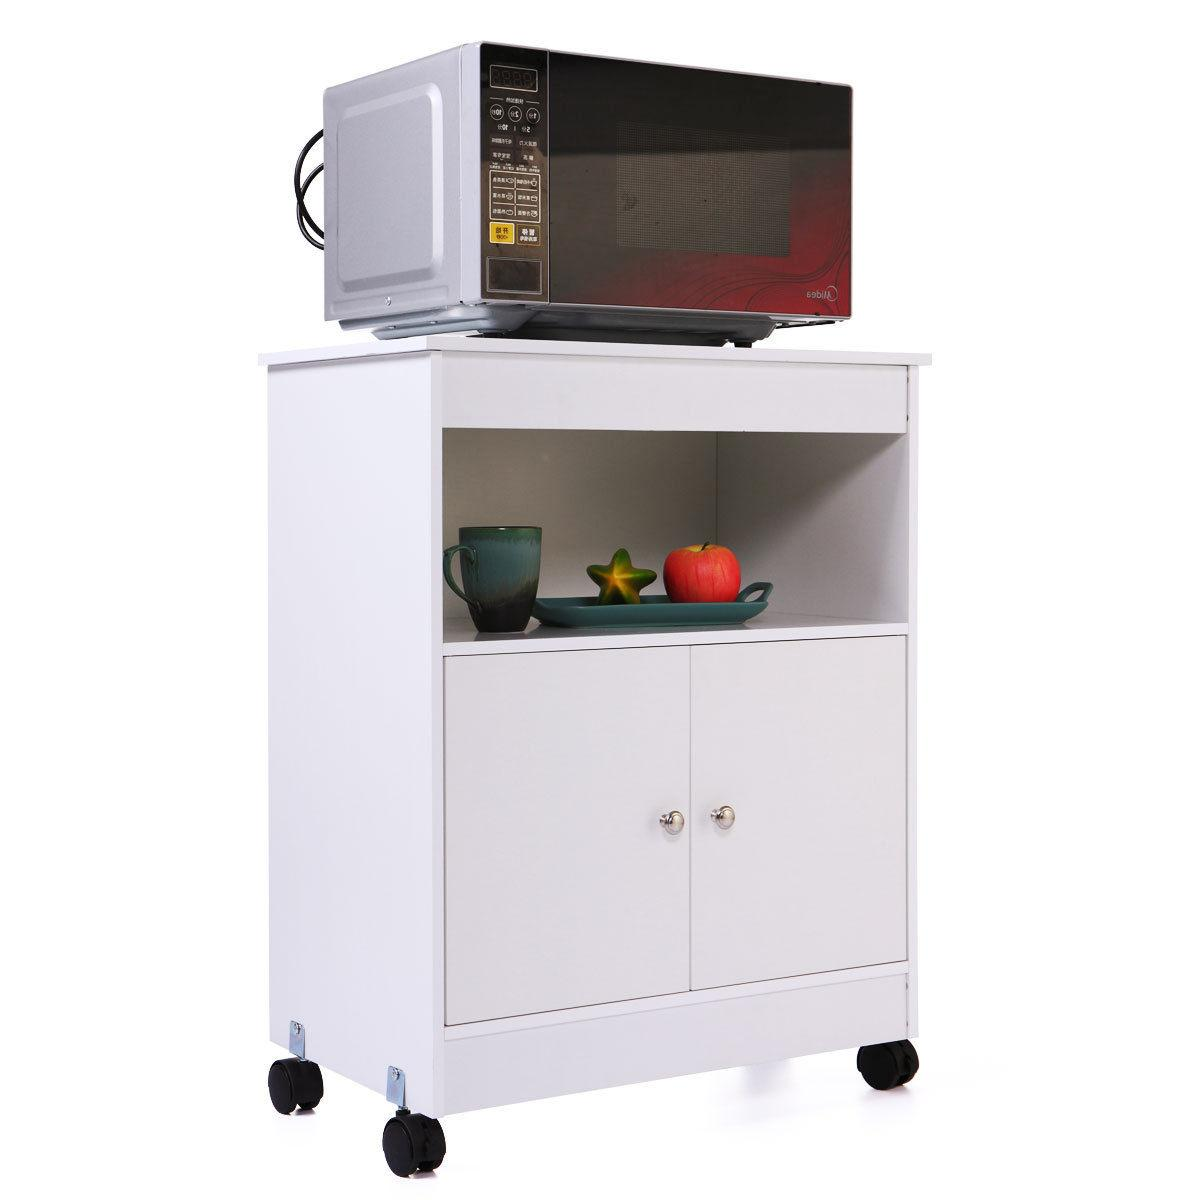 Home Kitchen Microwave Cart  Storage Large Open Shelf Cabine